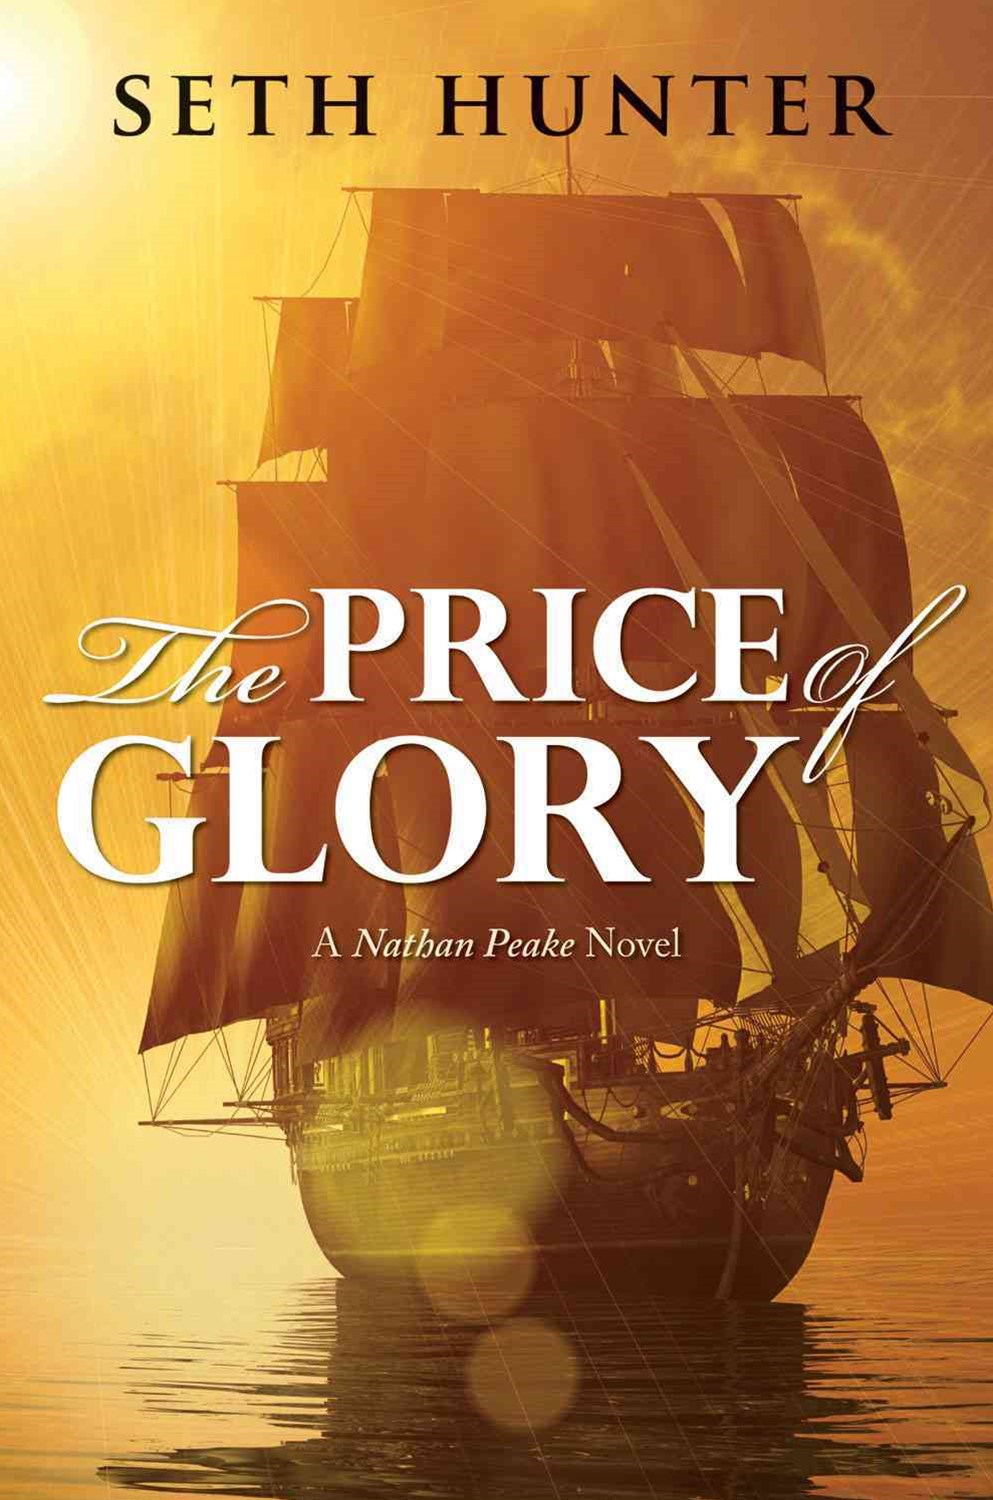 The Price of Glory